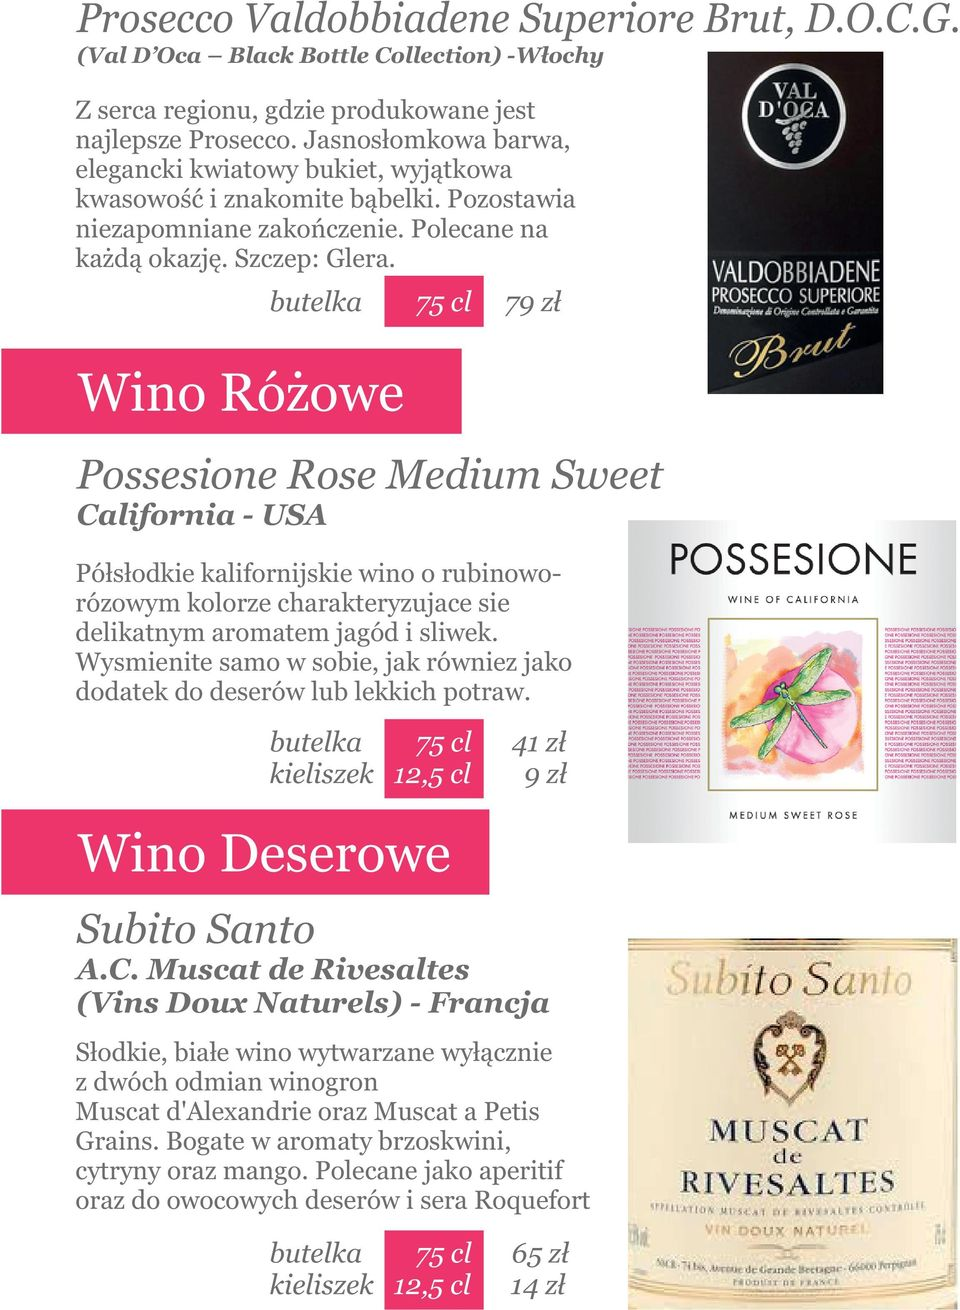 Wino Różowe 79 zł Possesione Rose Medium Sweet California - USA Półsłodkie kalifornijskie wino o rubinoworózowym kolorze charakteryzujace sie delikatnym aromatem jagód i sliwek.